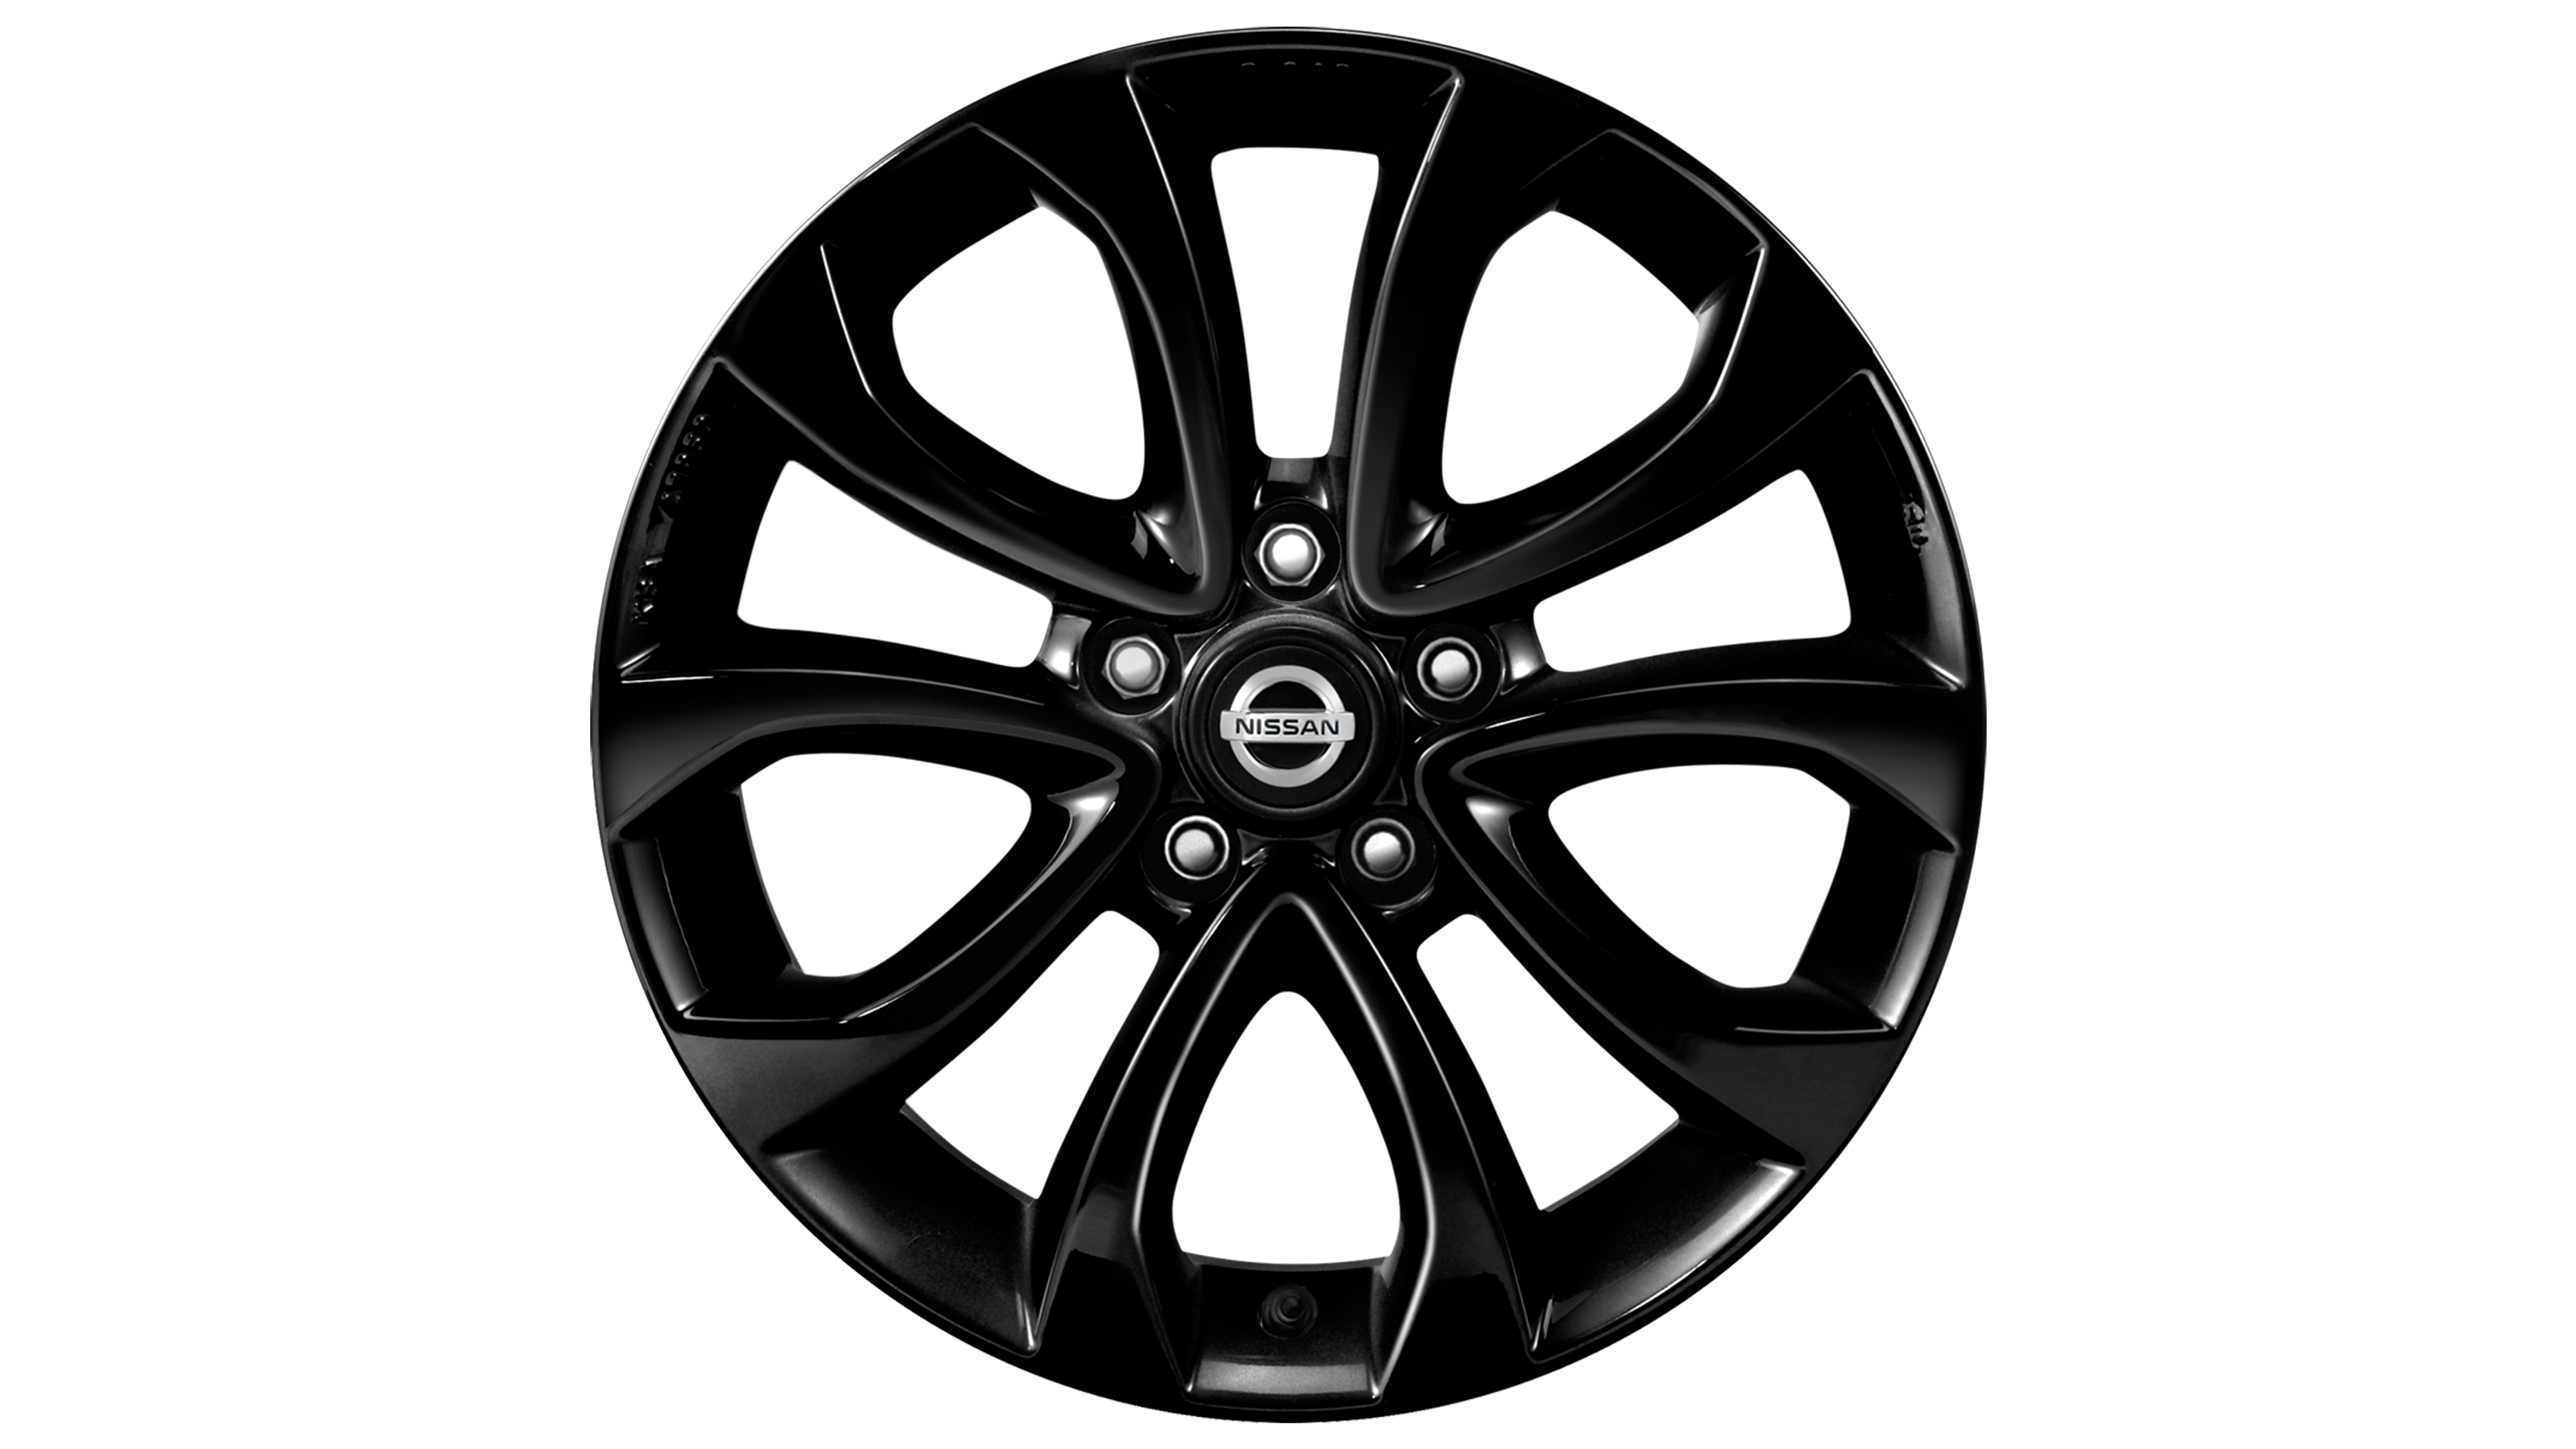 2018 Nissan JUKE 17 inch alloy wheel ATO black